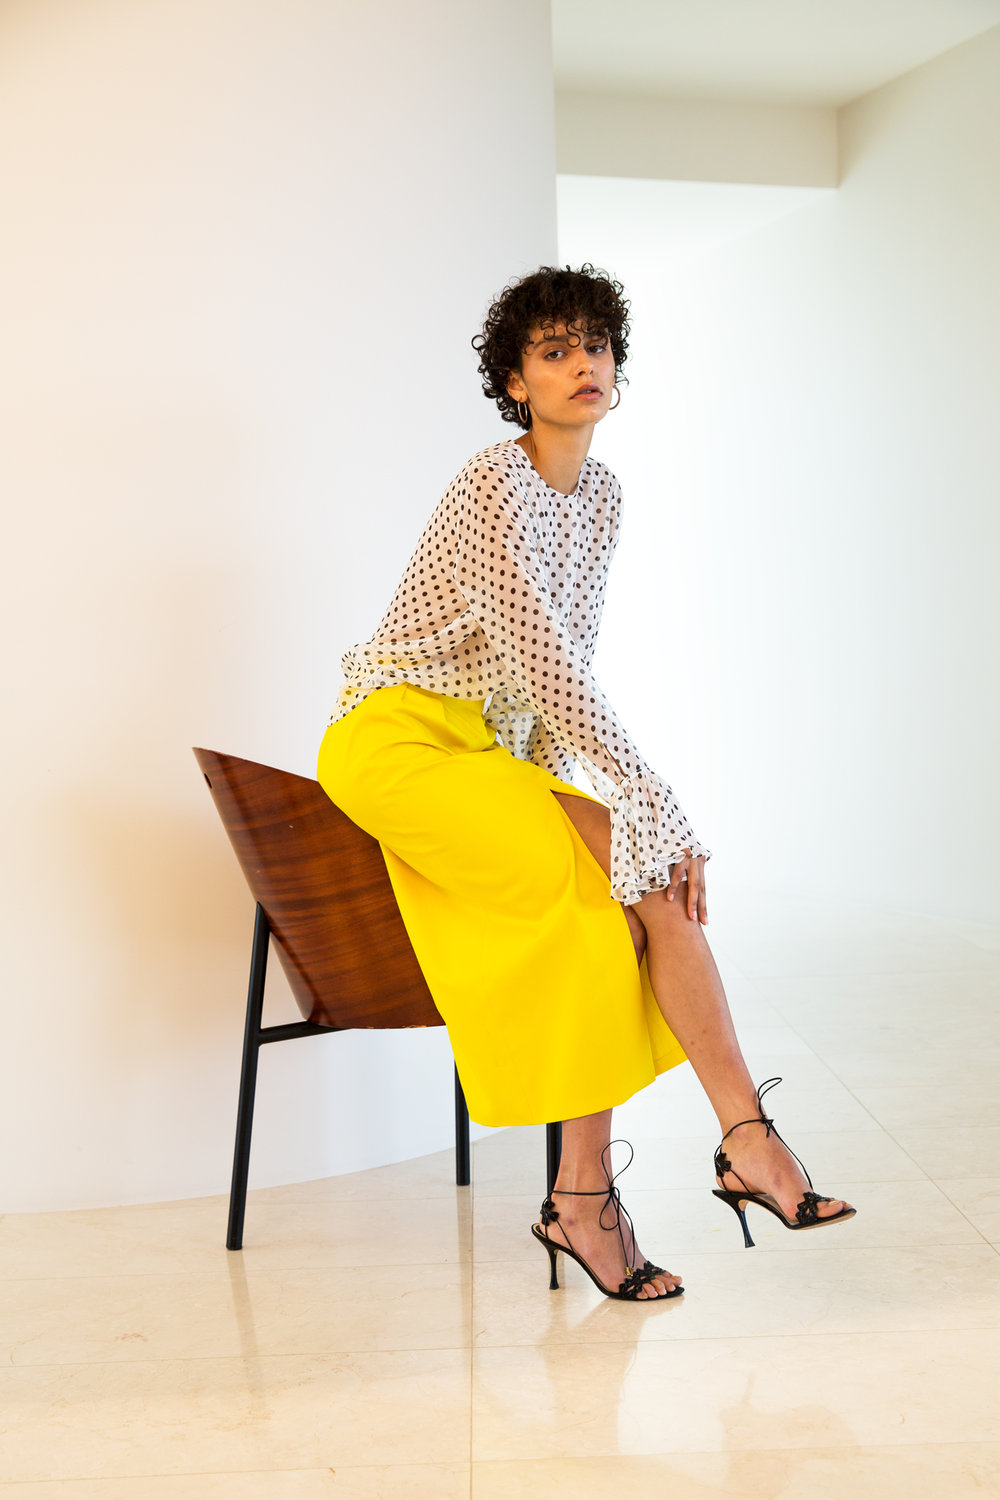 PF_PolkaTop_SplitSkirt_Resort18LookBook0091.jpg